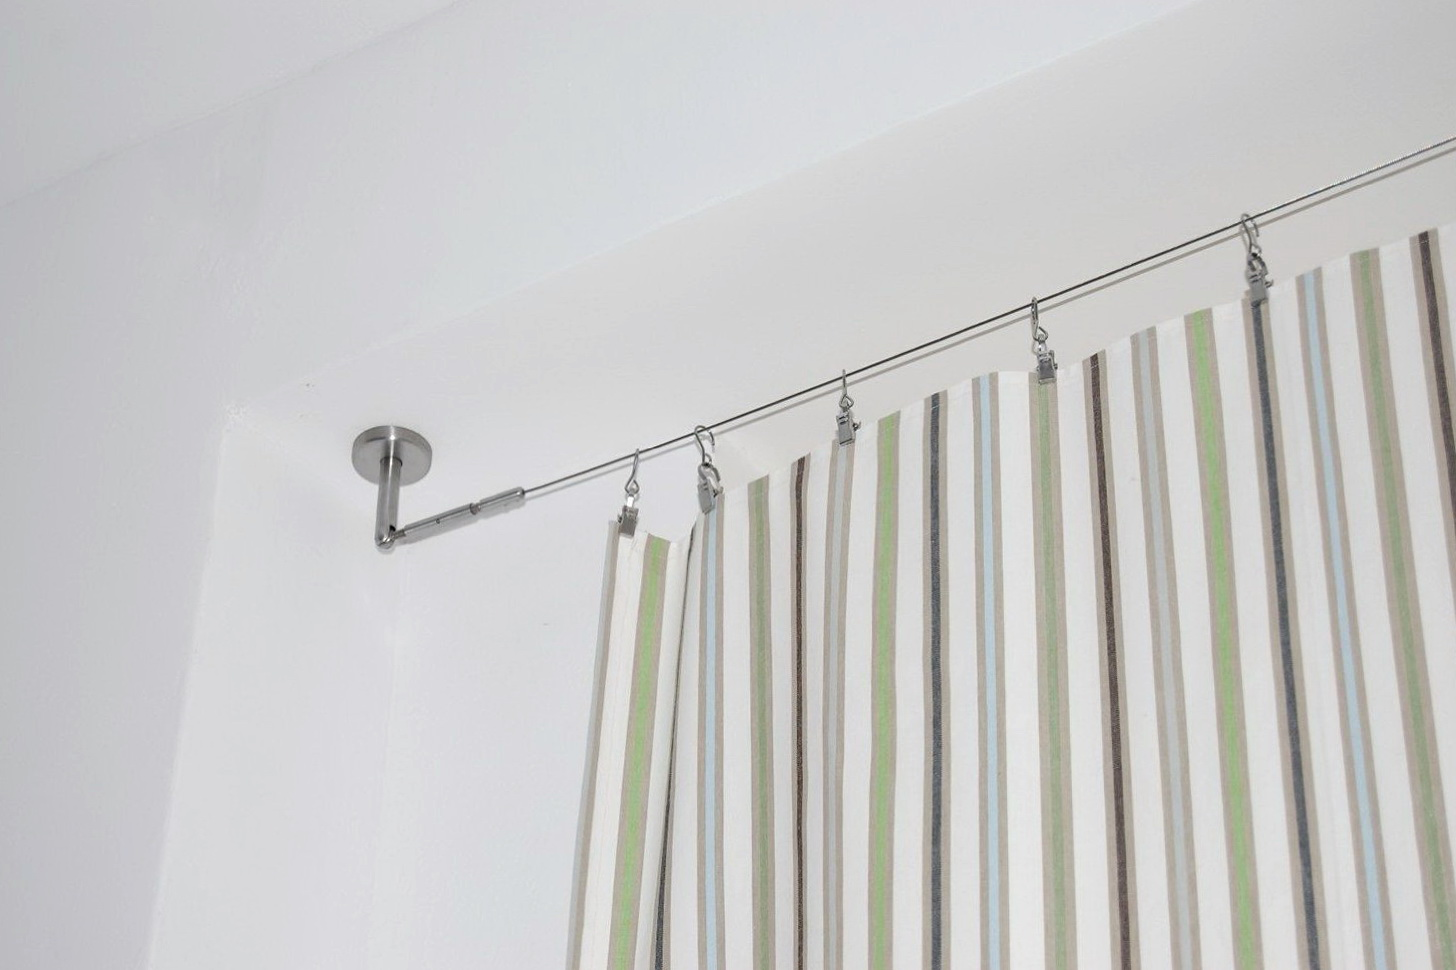 spring tension curtain rod ikea home design ideas